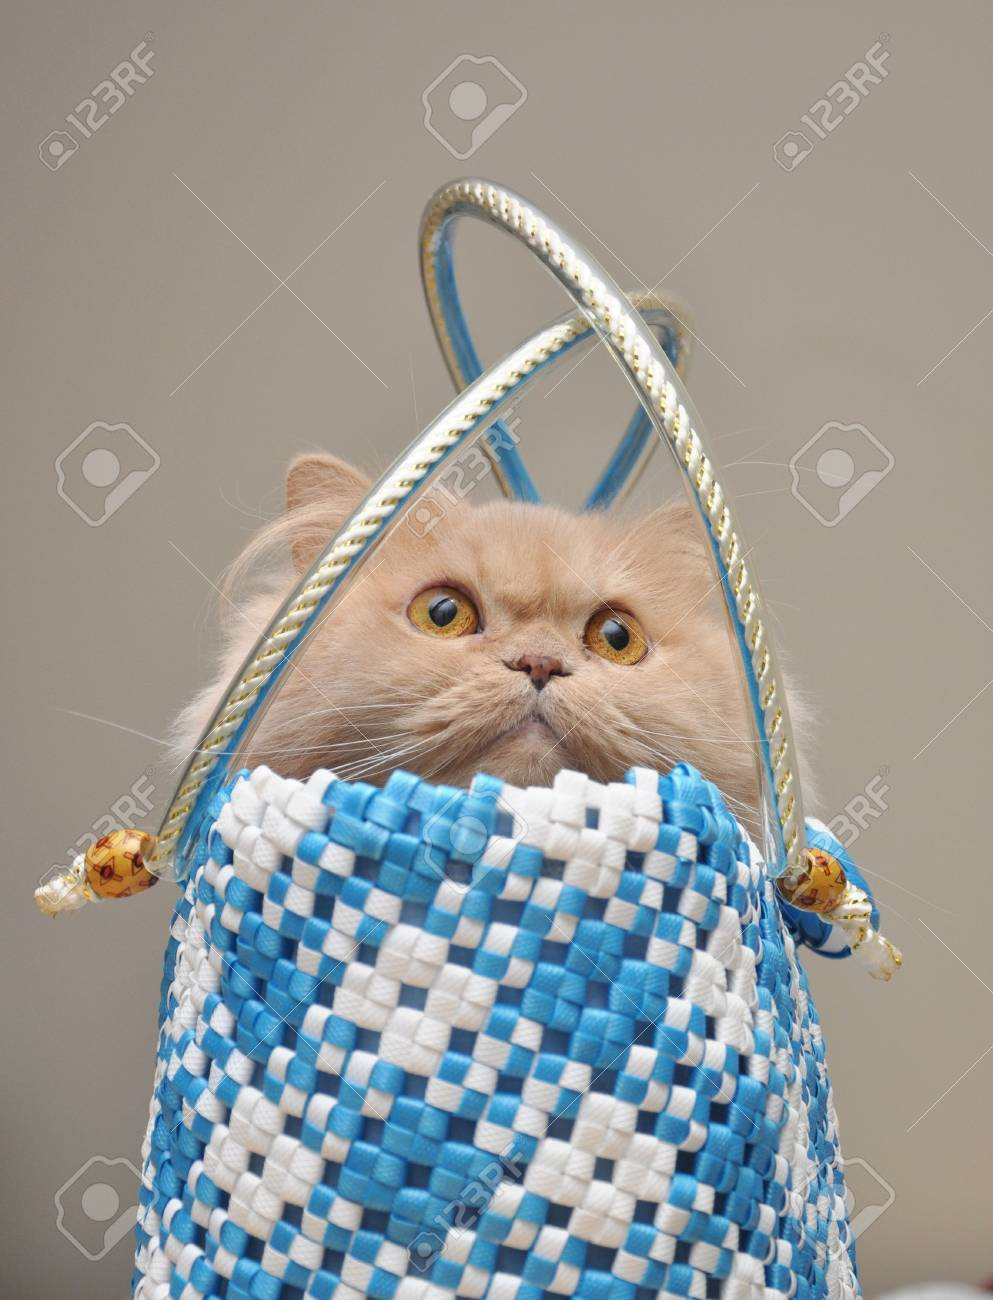 Cat hides into the bag Stock Photo - 6893396